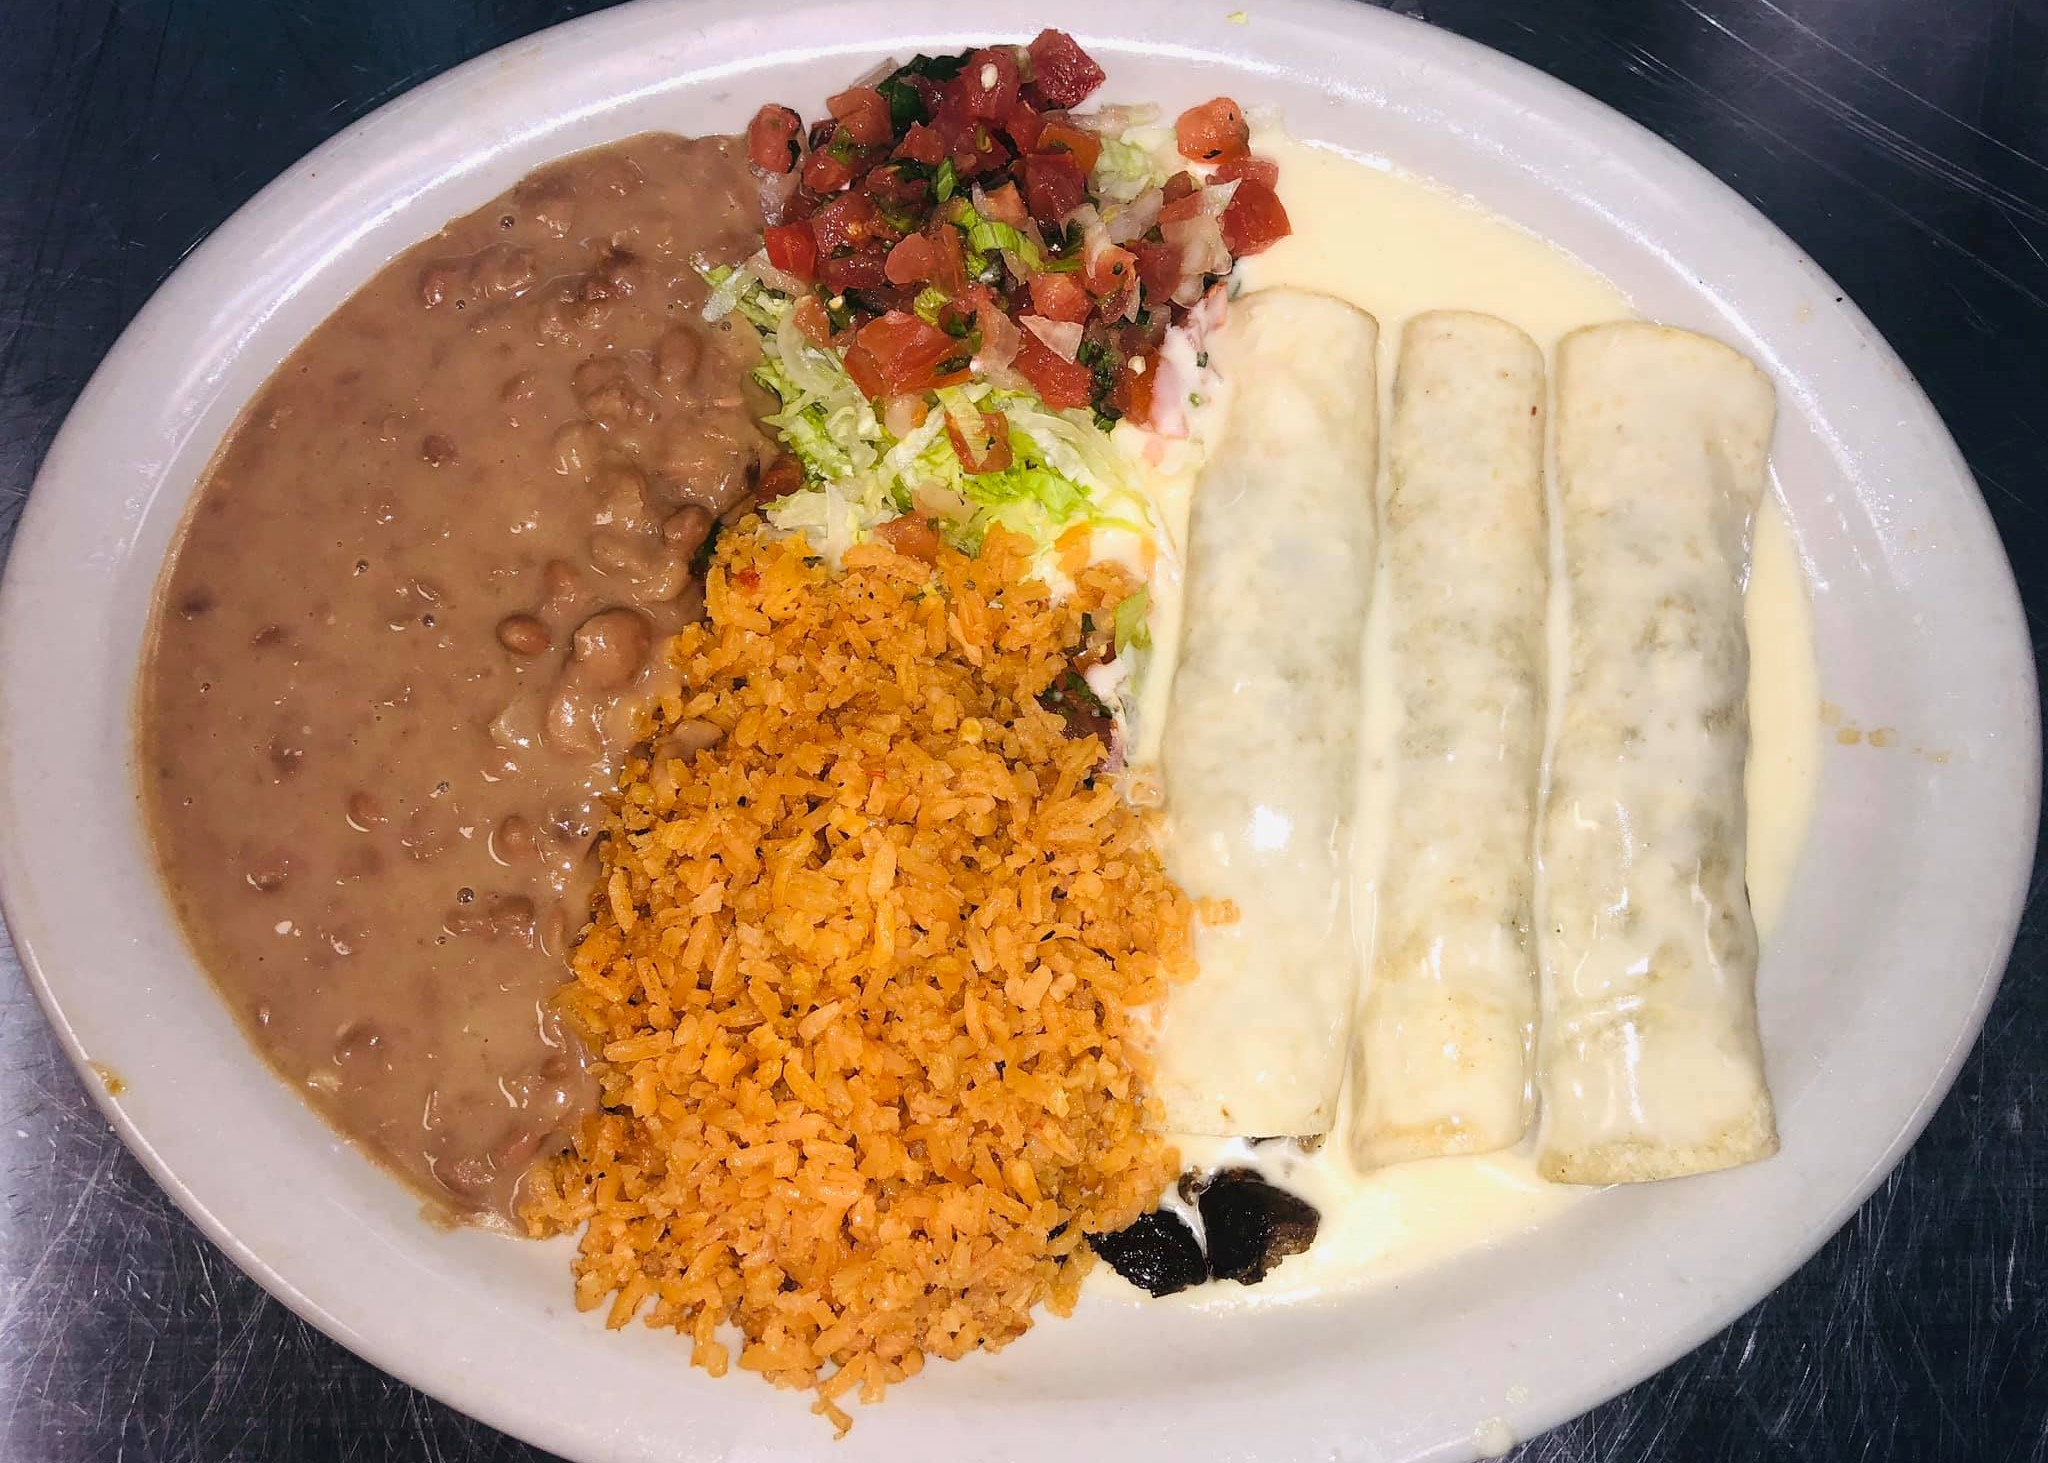 Enchiladas in cheese sauce with rice and beans